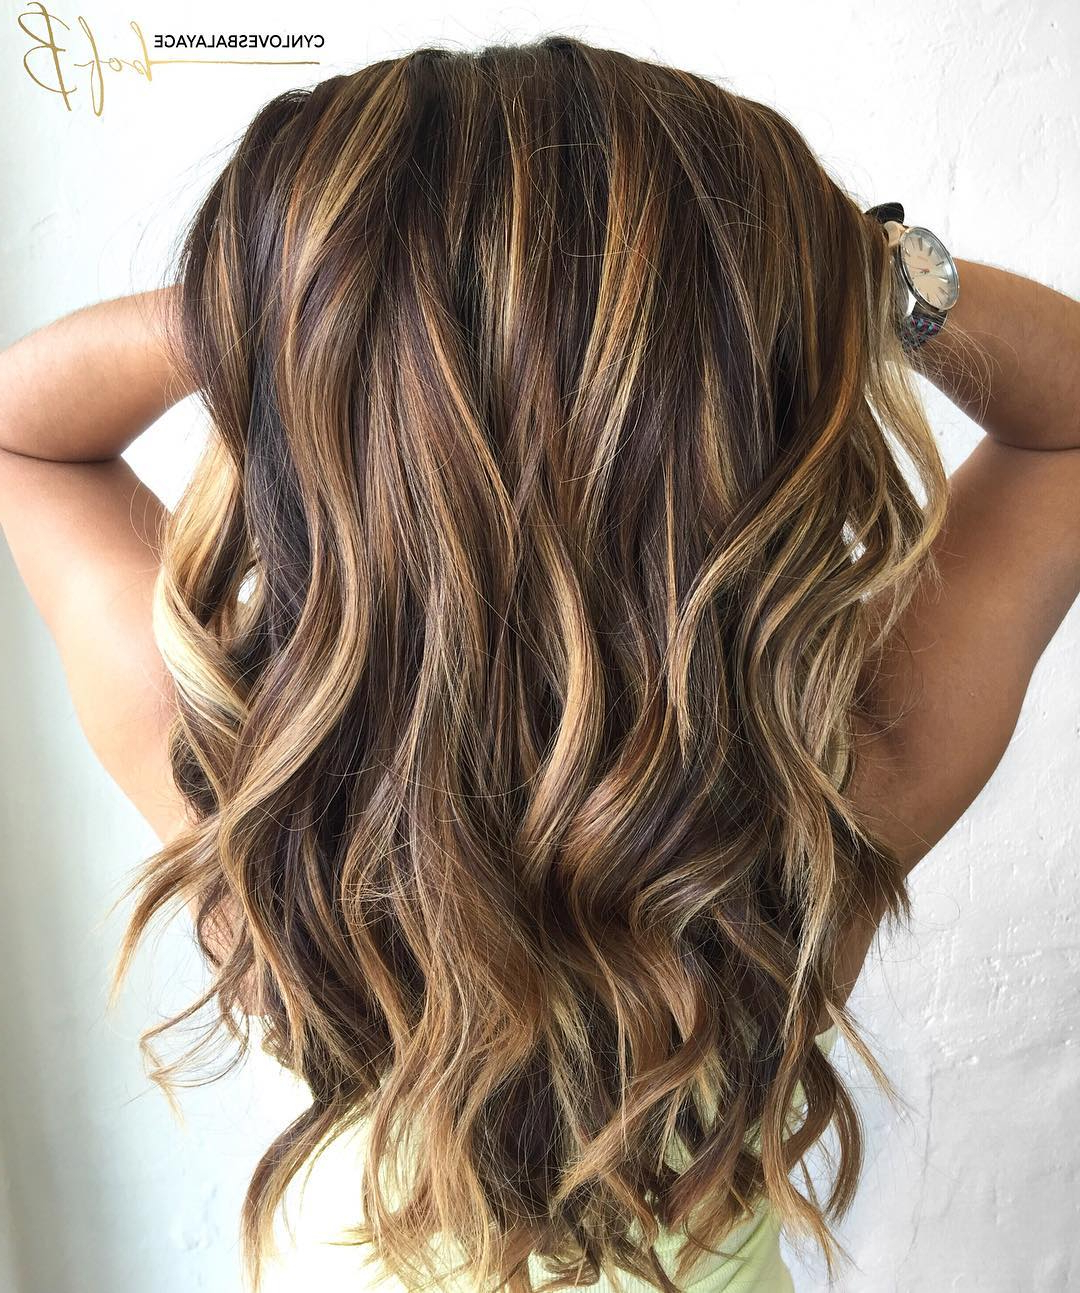 60 Looks With Caramel Highlights On Brown And Dark Brown Hair Inside Trendy Choppy Chestnut Locks For Long Hairstyles (View 5 of 20)